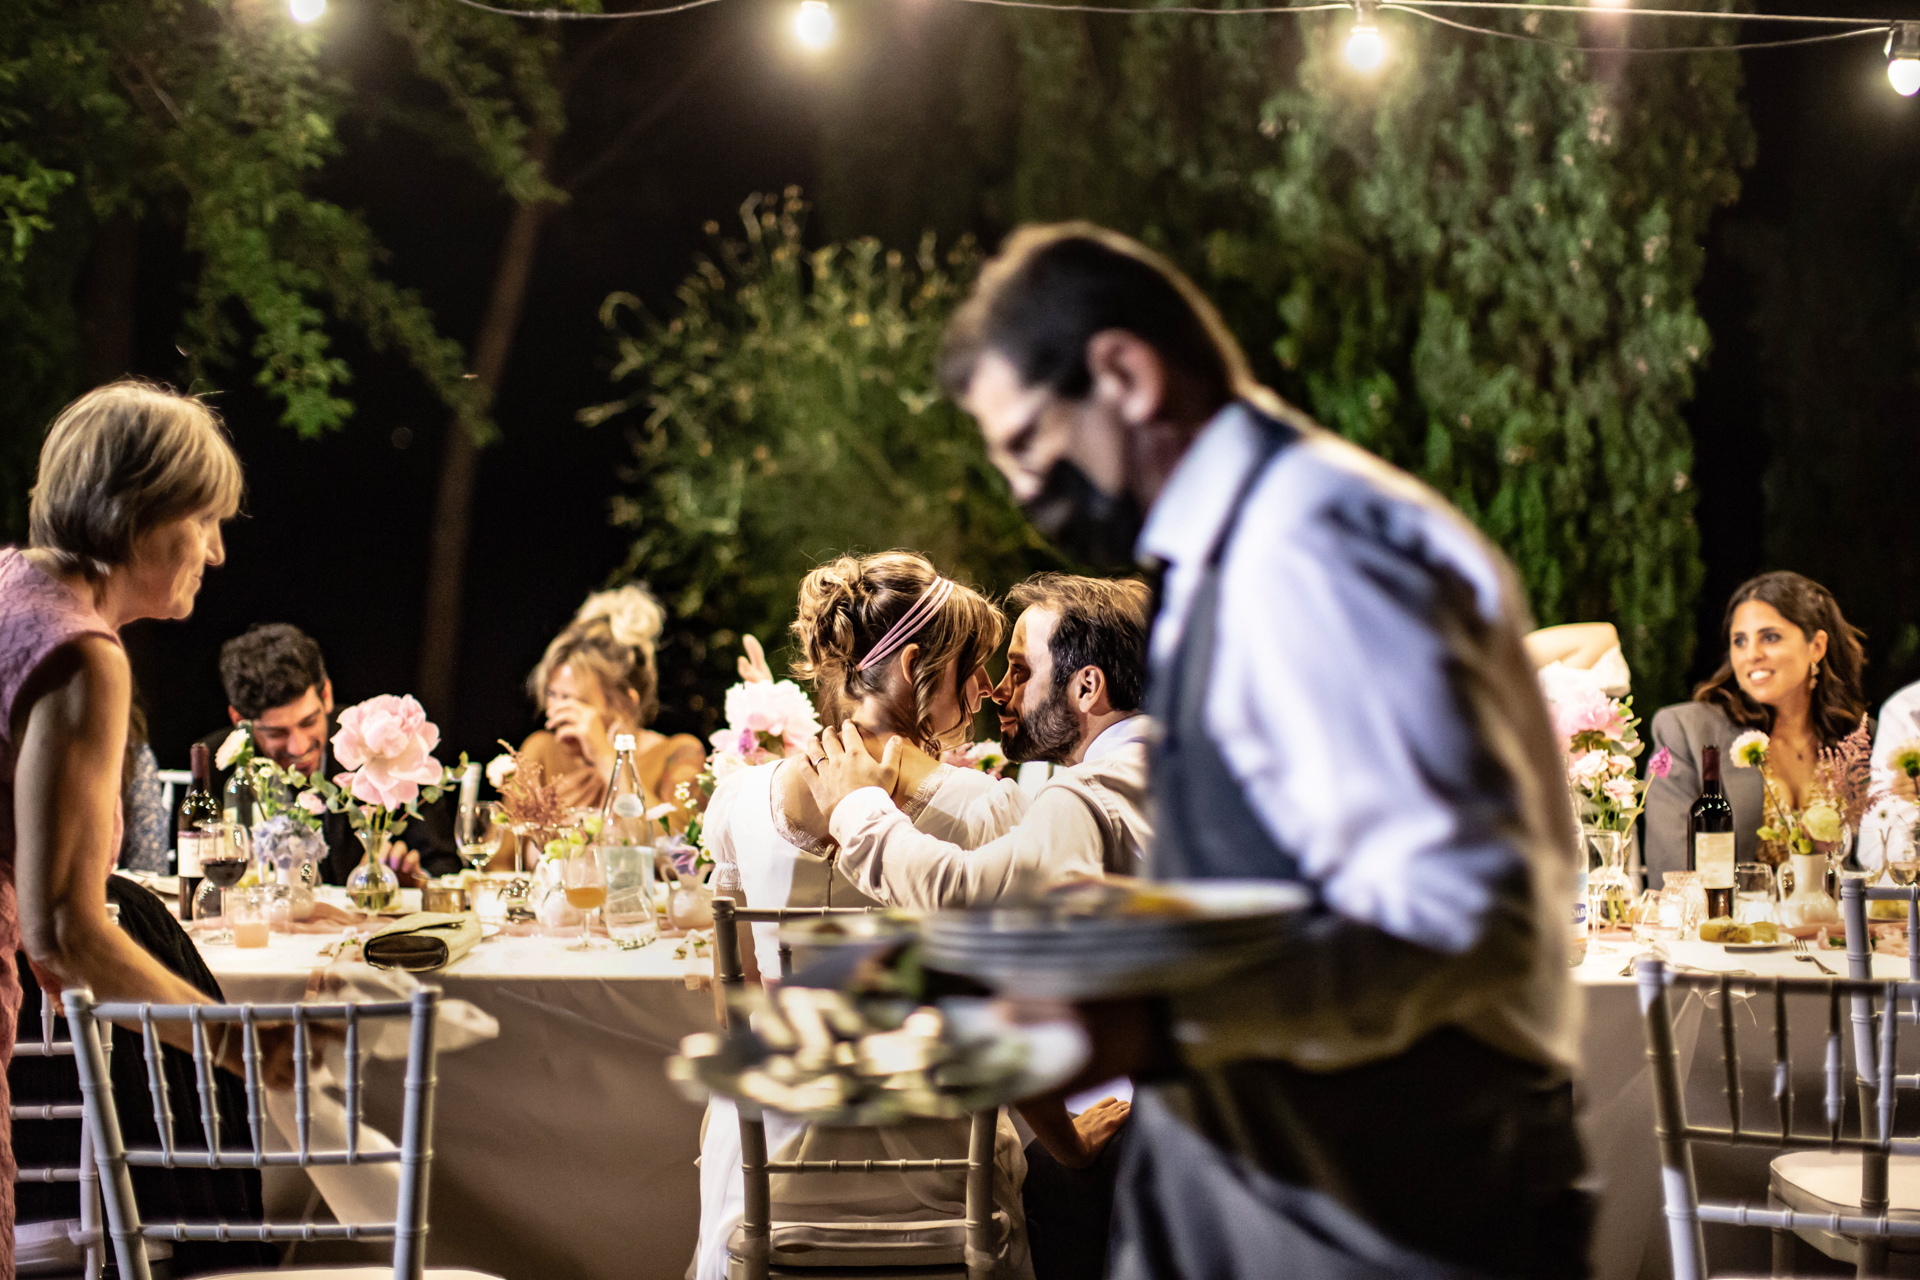 Wedding Reception Pic in San Demetrio - Cesena, Italy | the bride and groom are immersed in one another